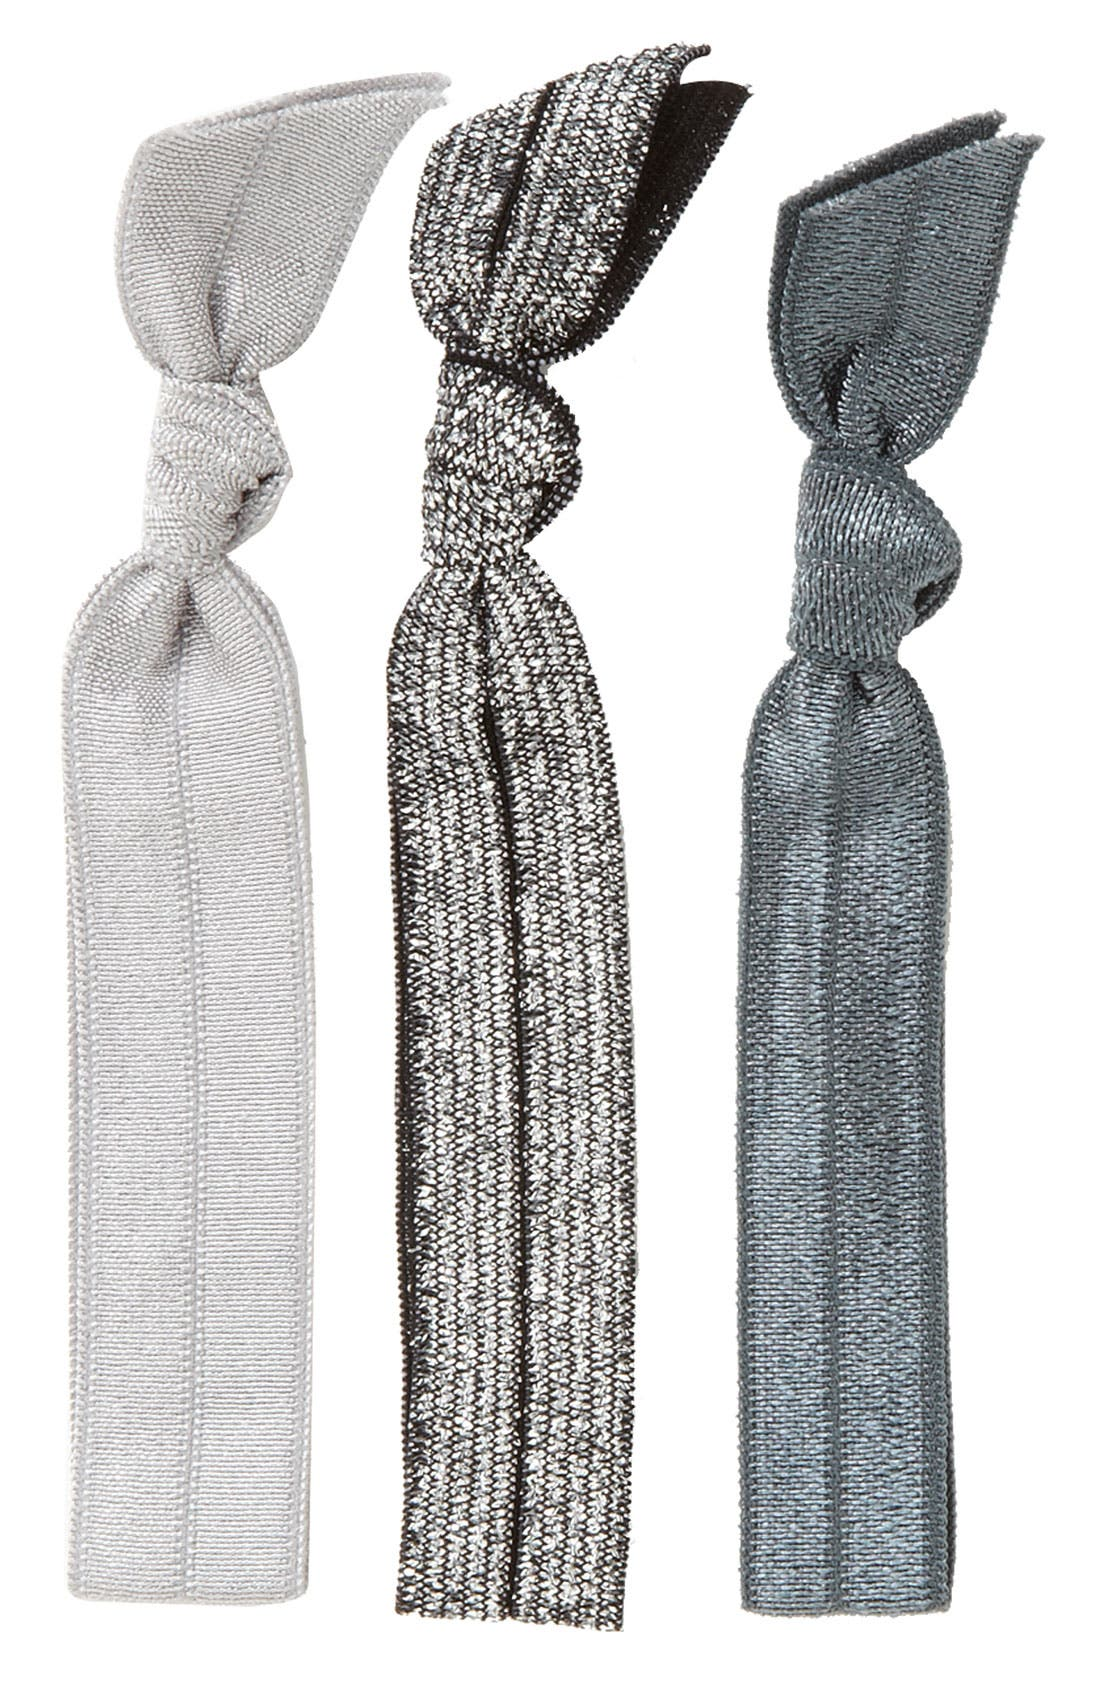 Main Image - Emi-Jay 'Silver Glitter' Hair Ties (3-Pack)